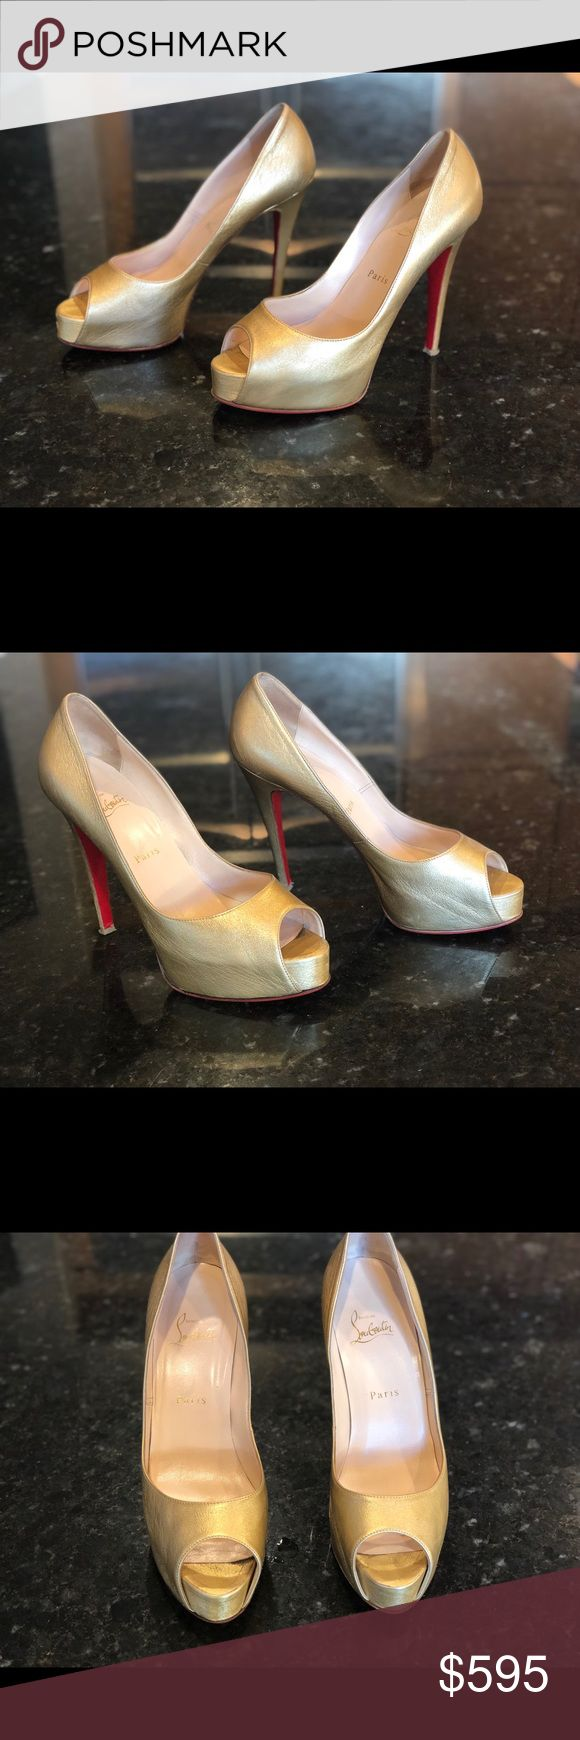 Christian Louboutin gold Very Prive heels 39 Gently pre-owned Christian Louboutin Very Prive heels in gold. Size 39.5, custom vibram sole protectors added by cobbler.  Small wear noticeable only on heel. Christian Louboutin Shoes Heels